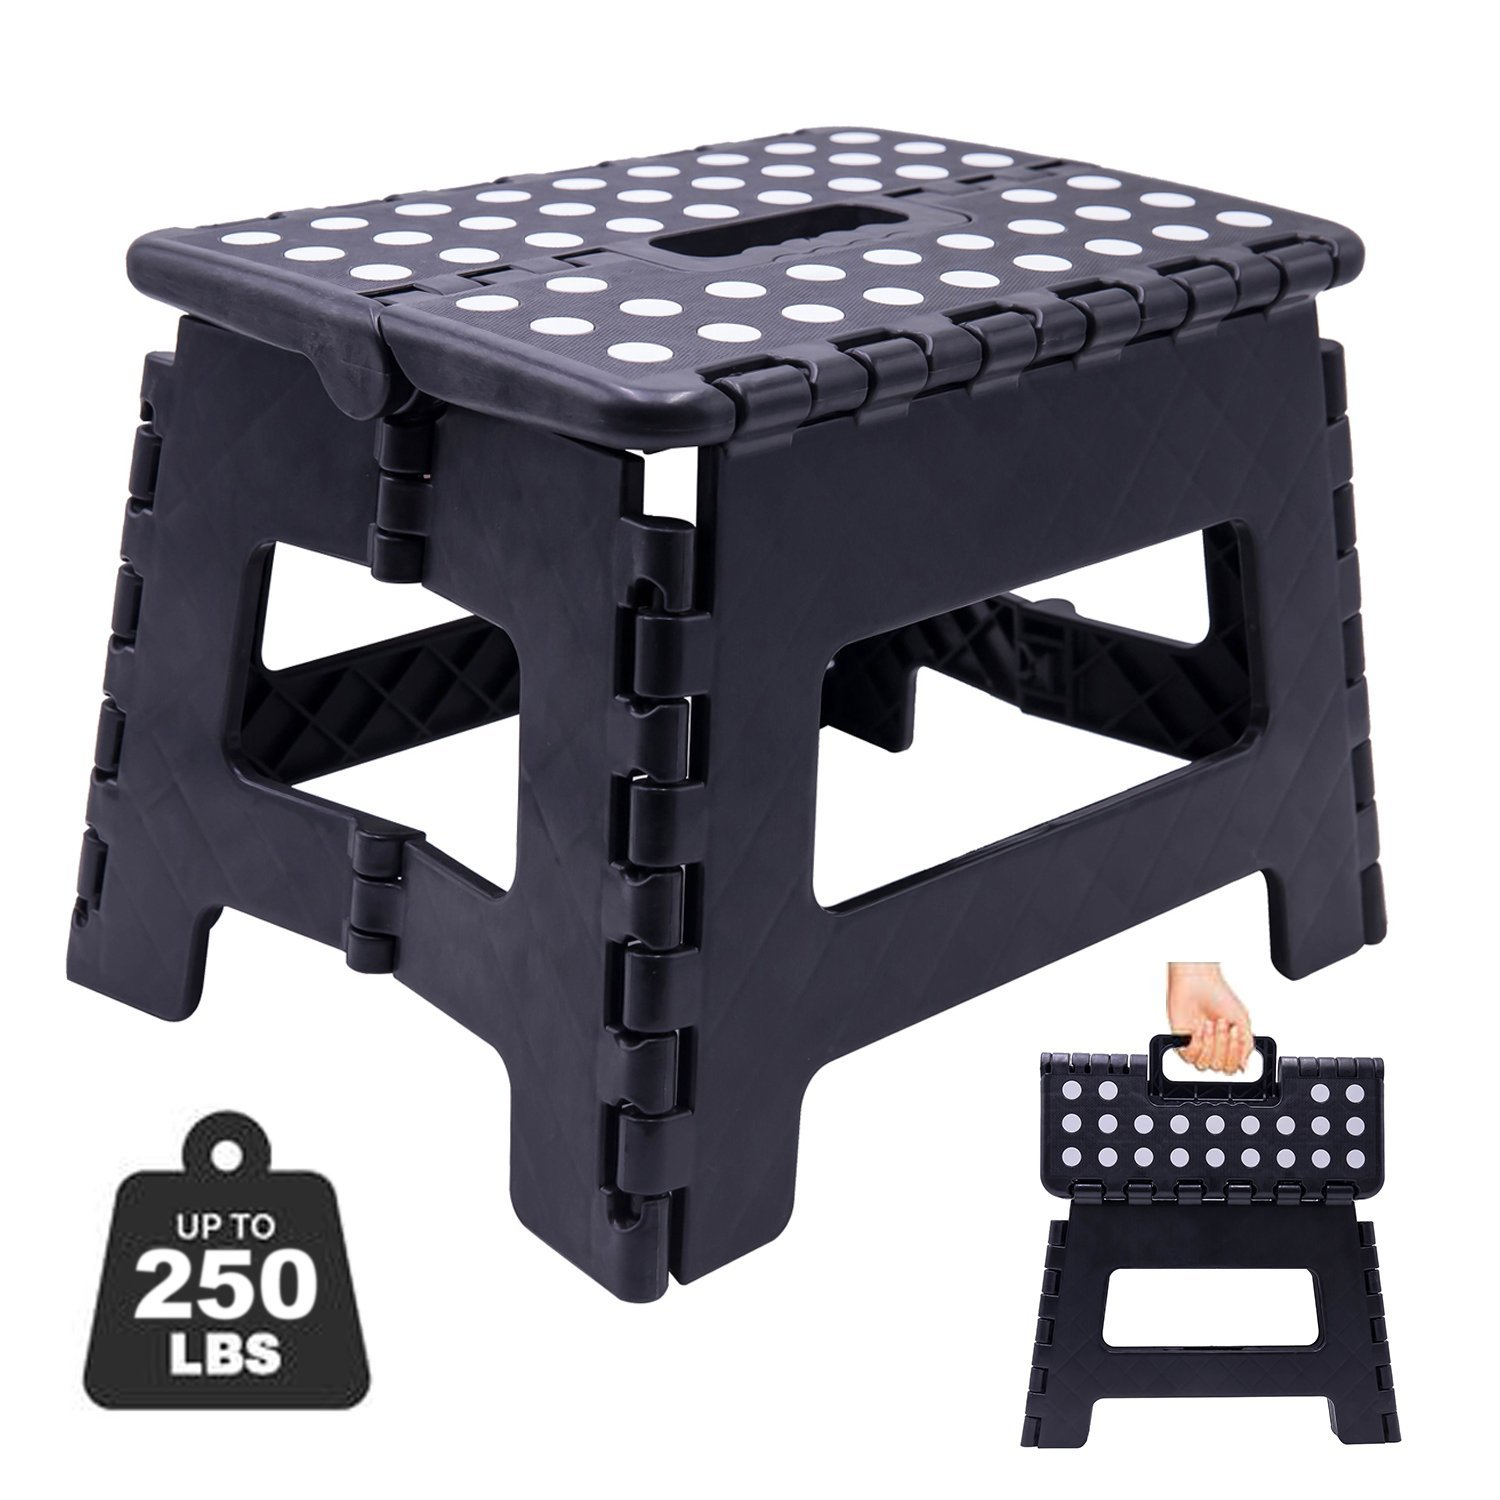 Folding Step Stool Super Strong Plastic 9 Inch Step Stool